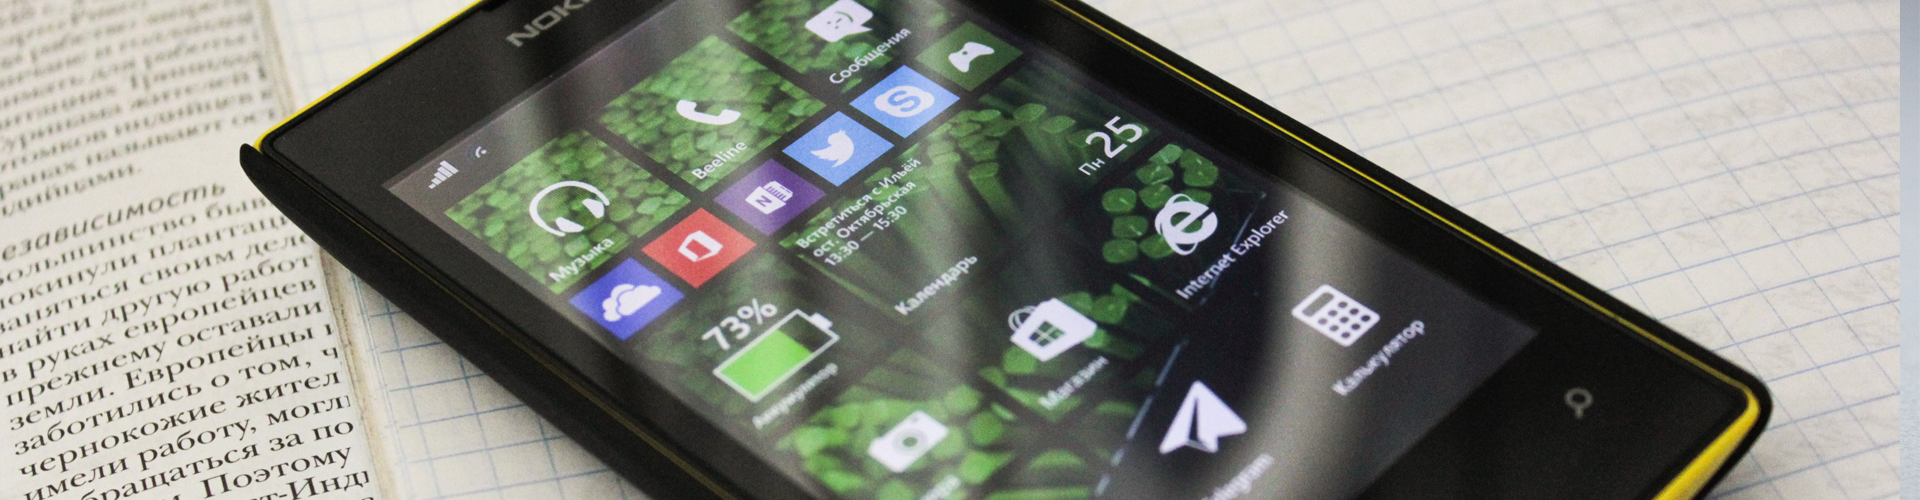 How to set up email accounts on Windows Phone